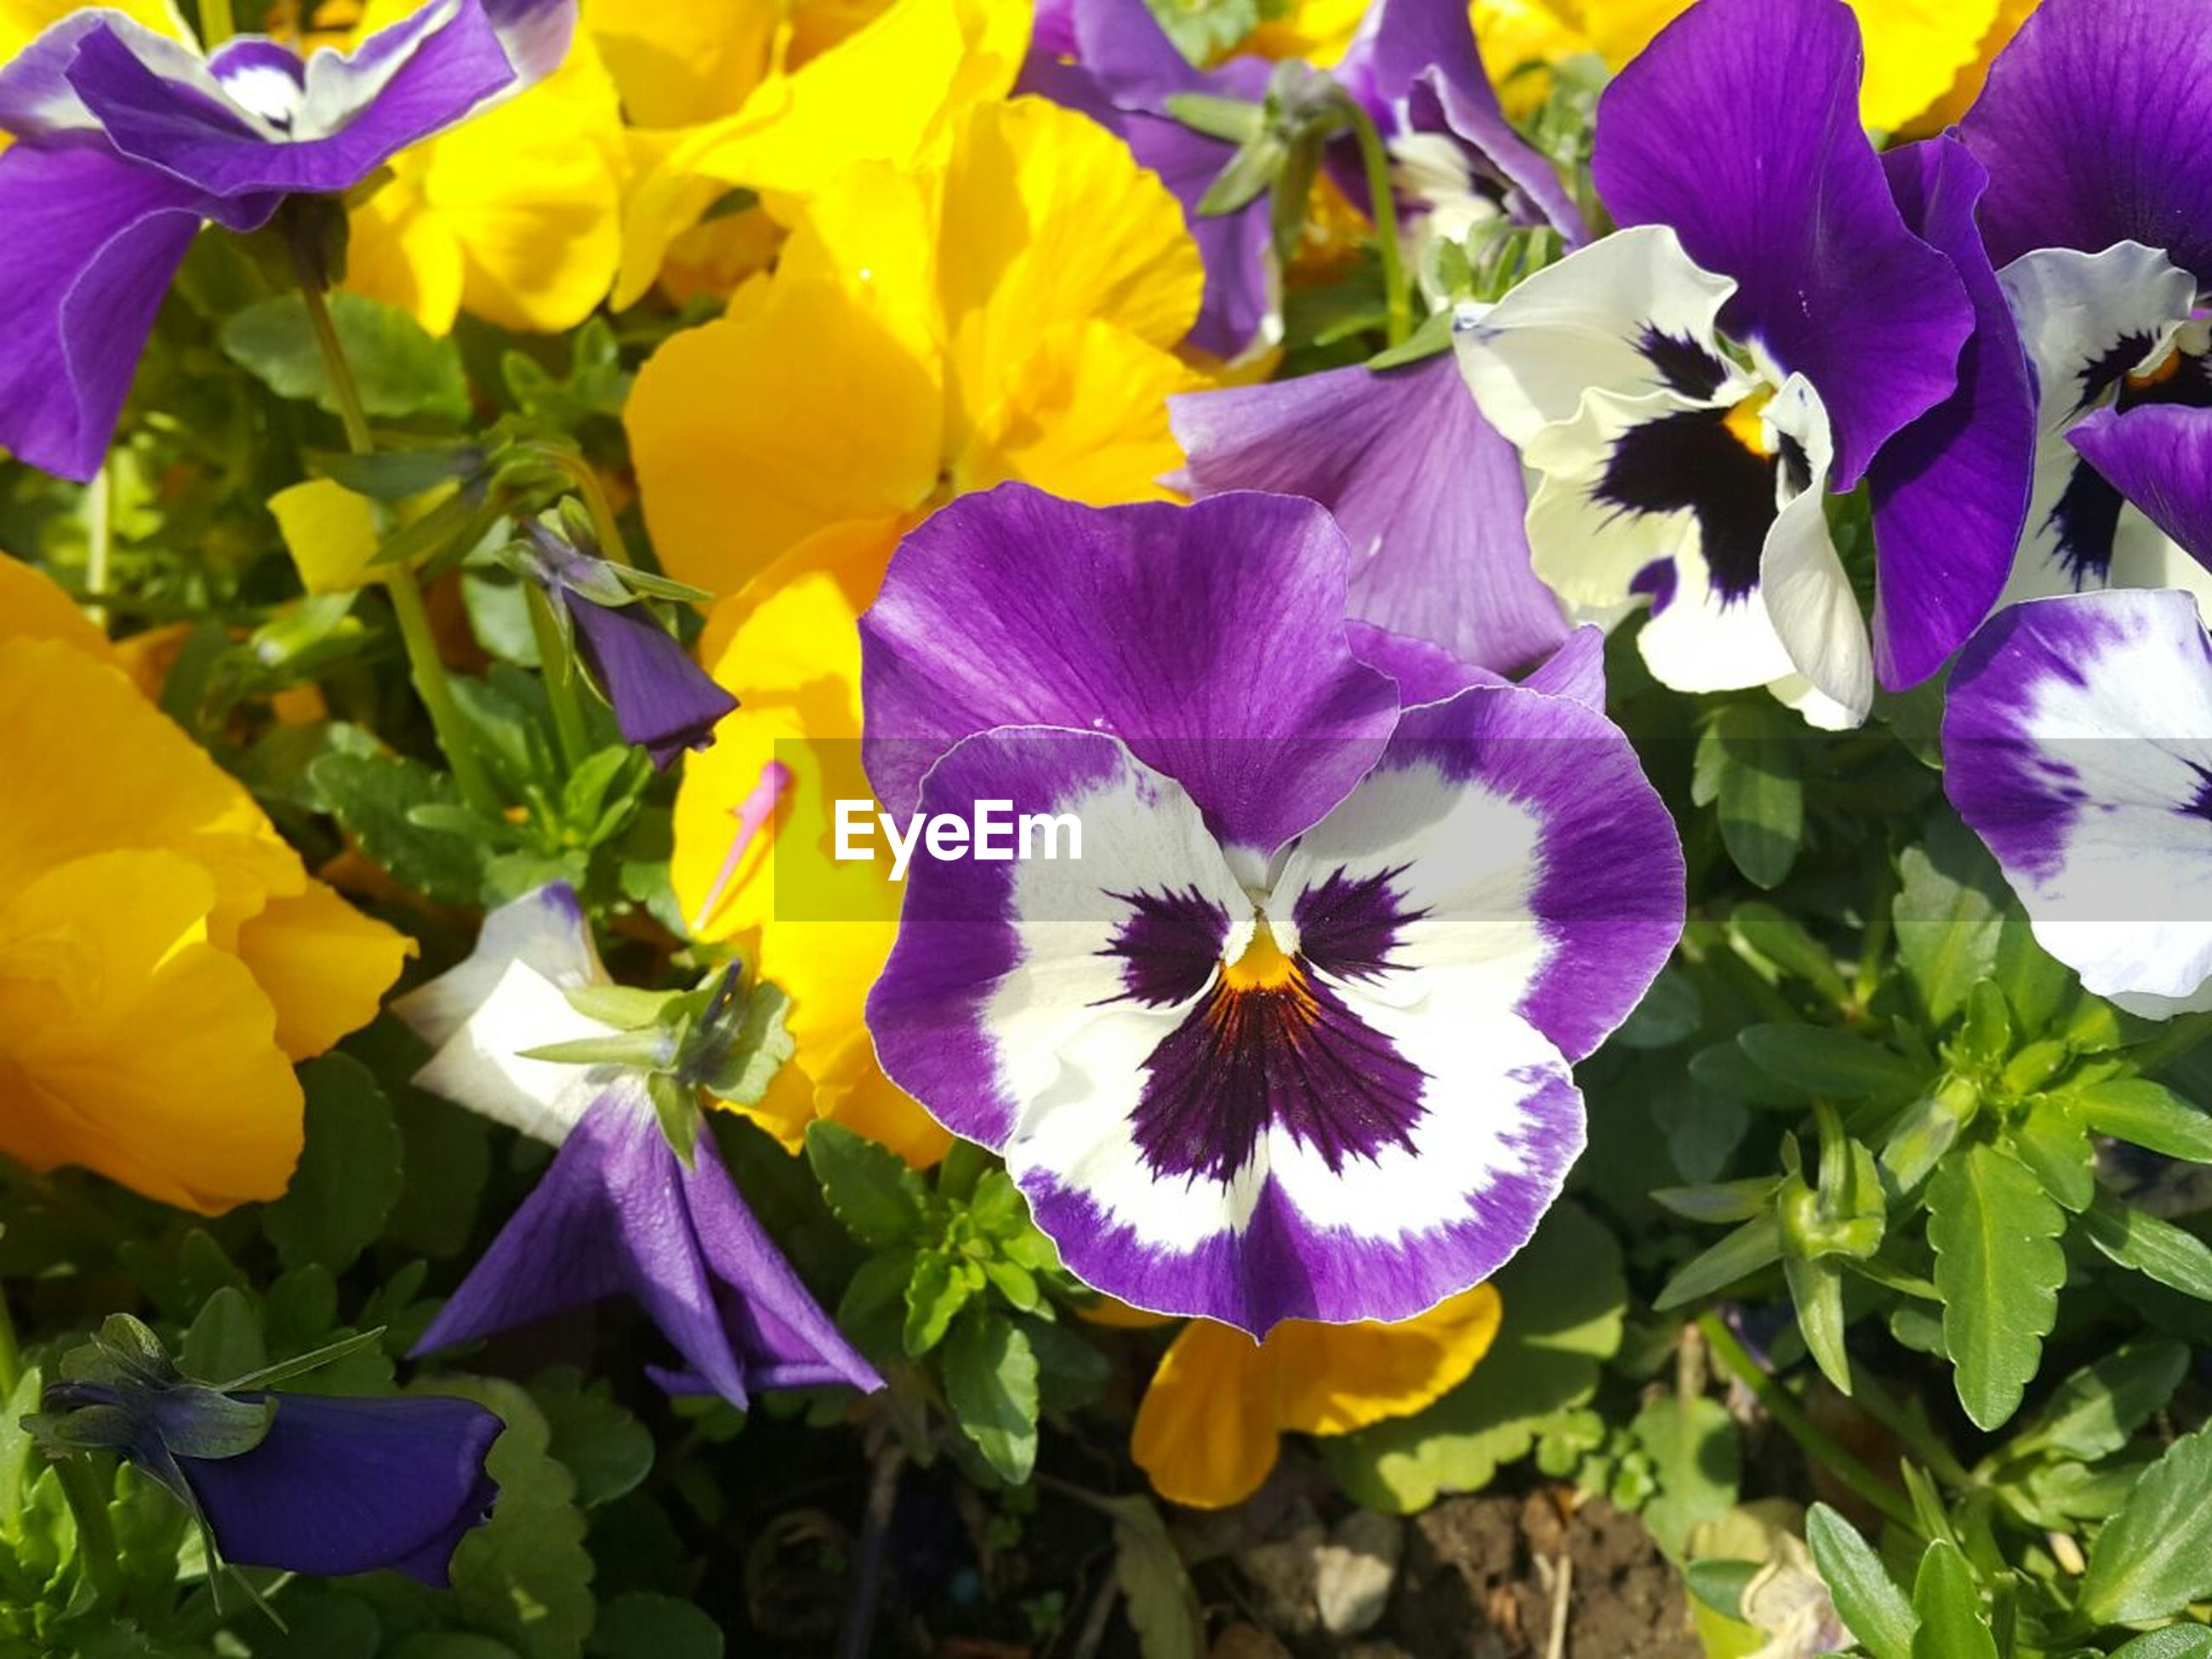 flower, petal, freshness, fragility, flower head, nature, purple, beauty in nature, close-up, pansy, plant, growth, blooming, no people, day, outdoors